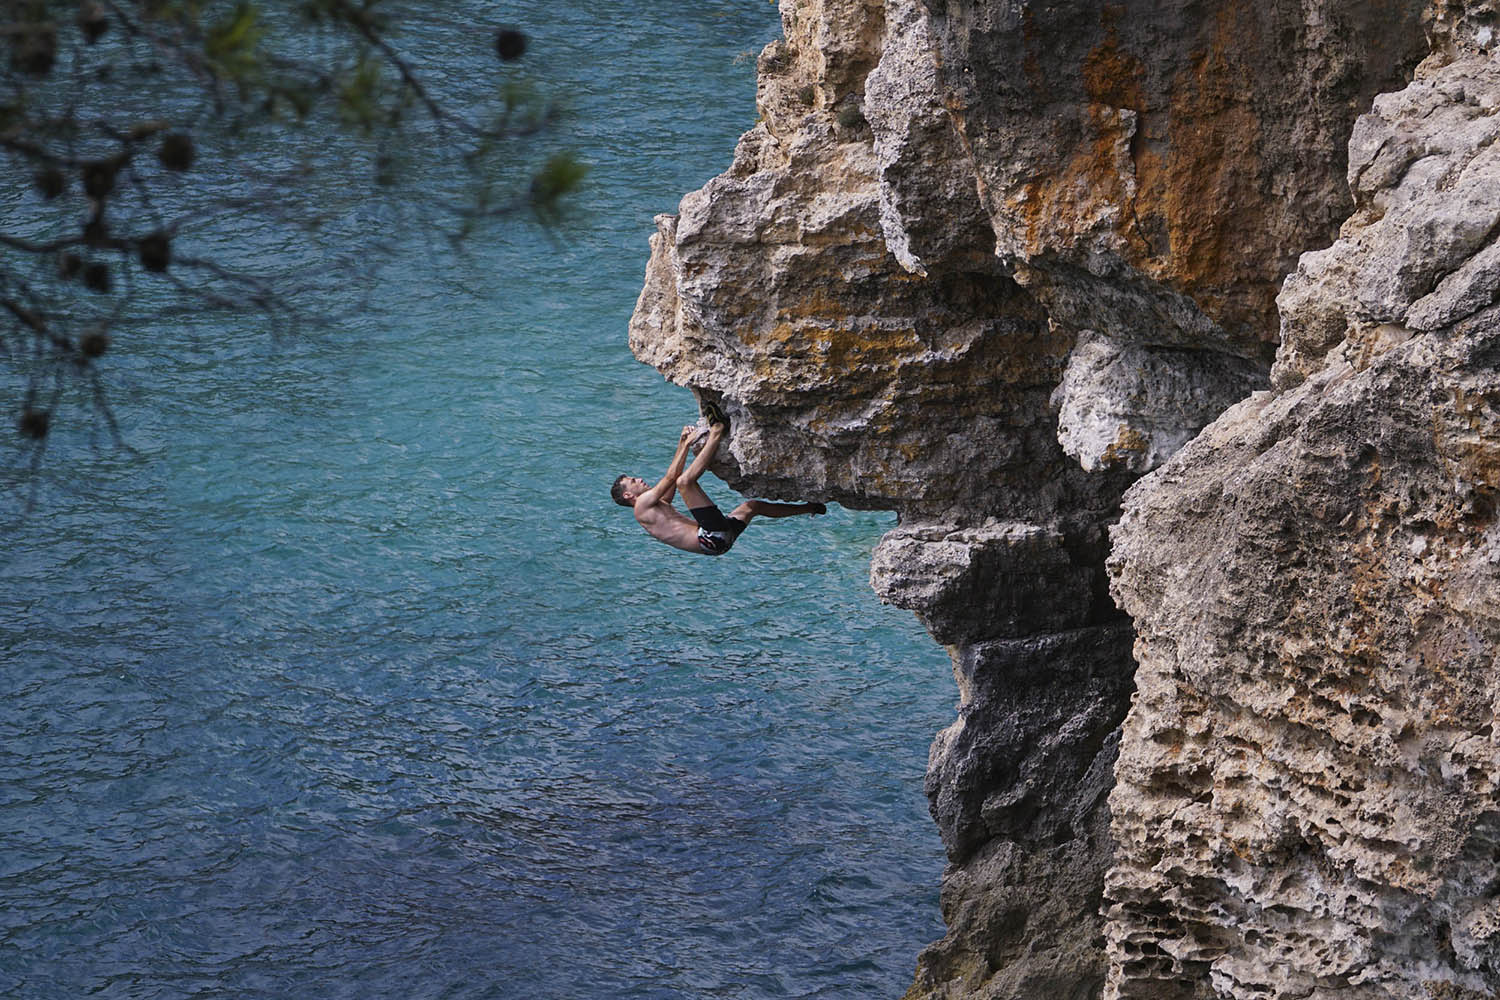 mallorca deep water solo rock climbing graphic design poster